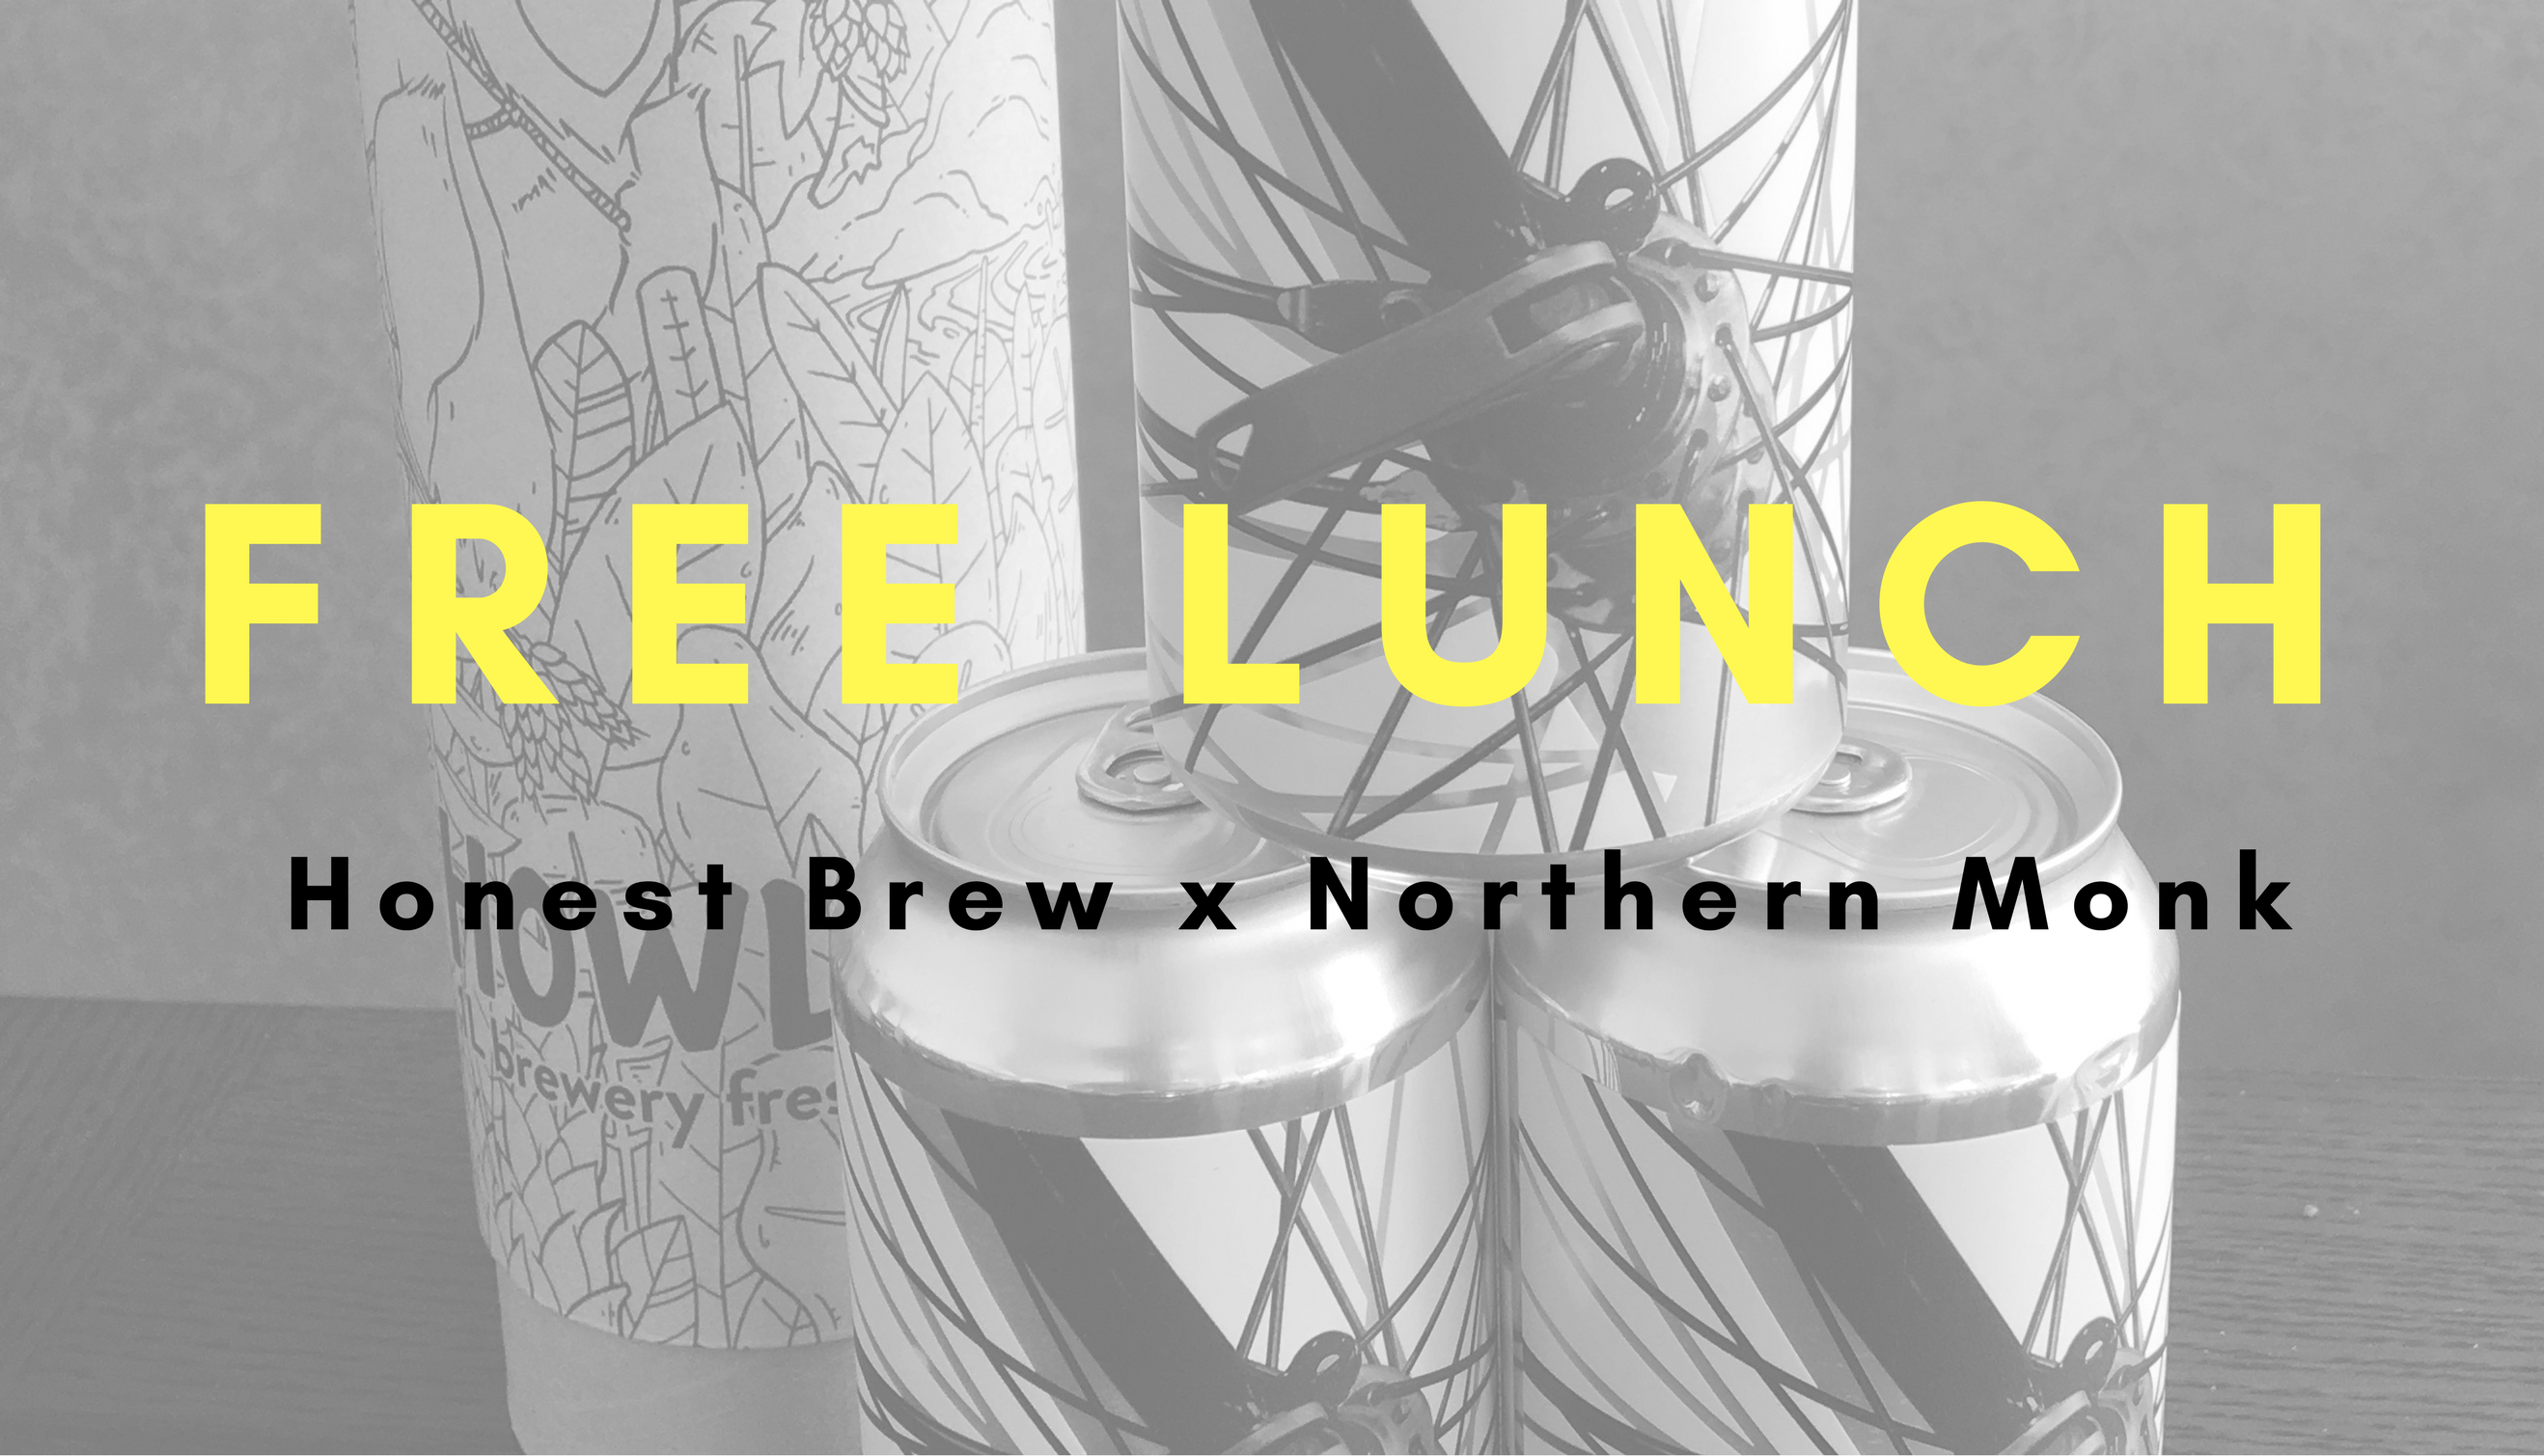 Craft Beer Peddlers Honest Brew Team with Northern Monk to Provide a Free Lunch